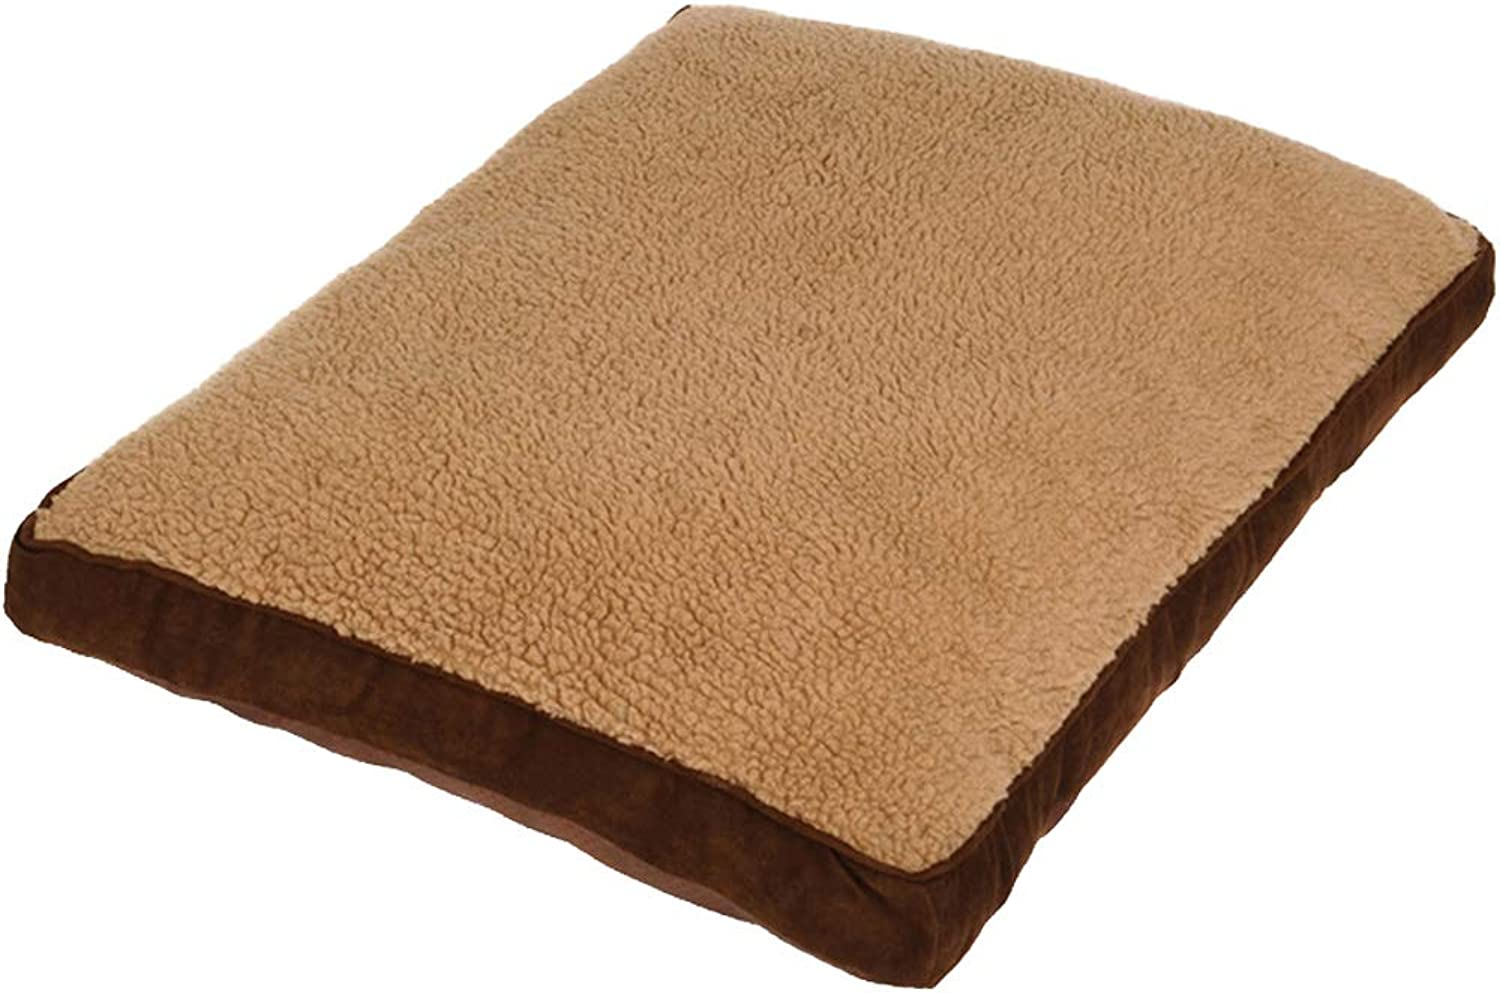 BYCWS Cat Dog Bed Dog Blanket Dog Bed Large Crate Pad Mat Soft Mattress AntiSlip 100% Washable Dog Mattress Pets Kennel Pads,29.53x23.62x4.33in